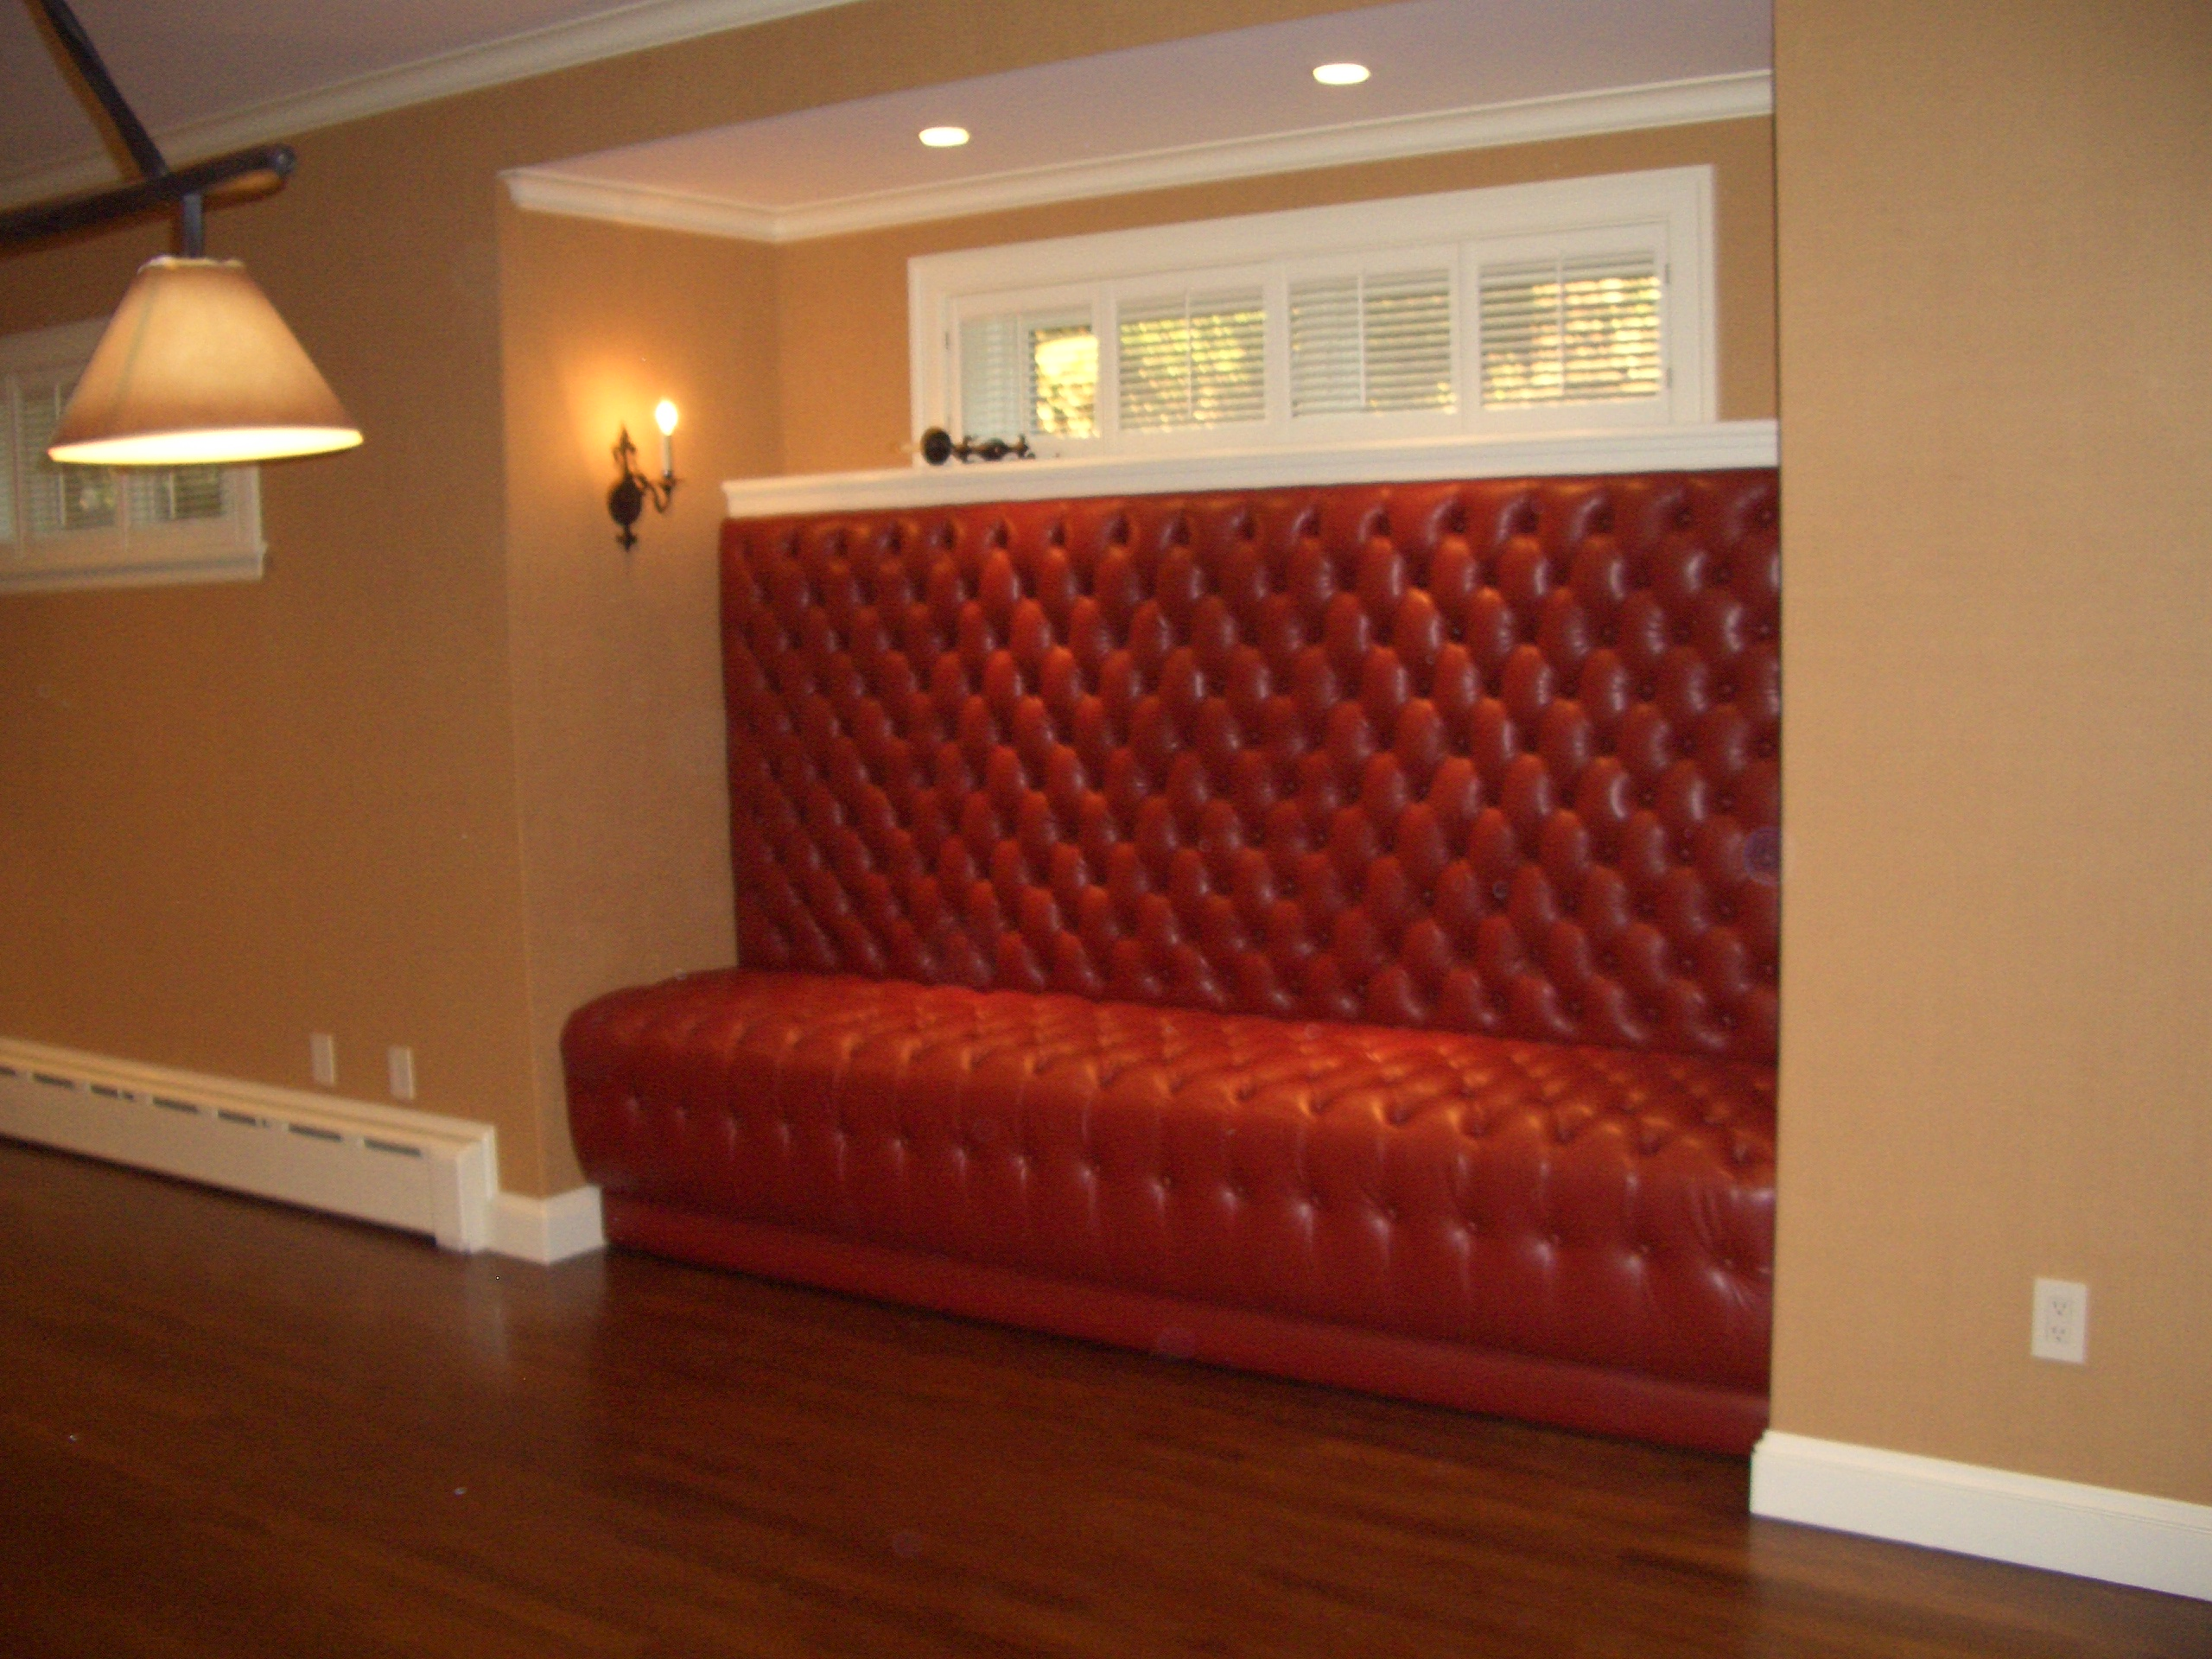 Tufted Banquette, Upholstery